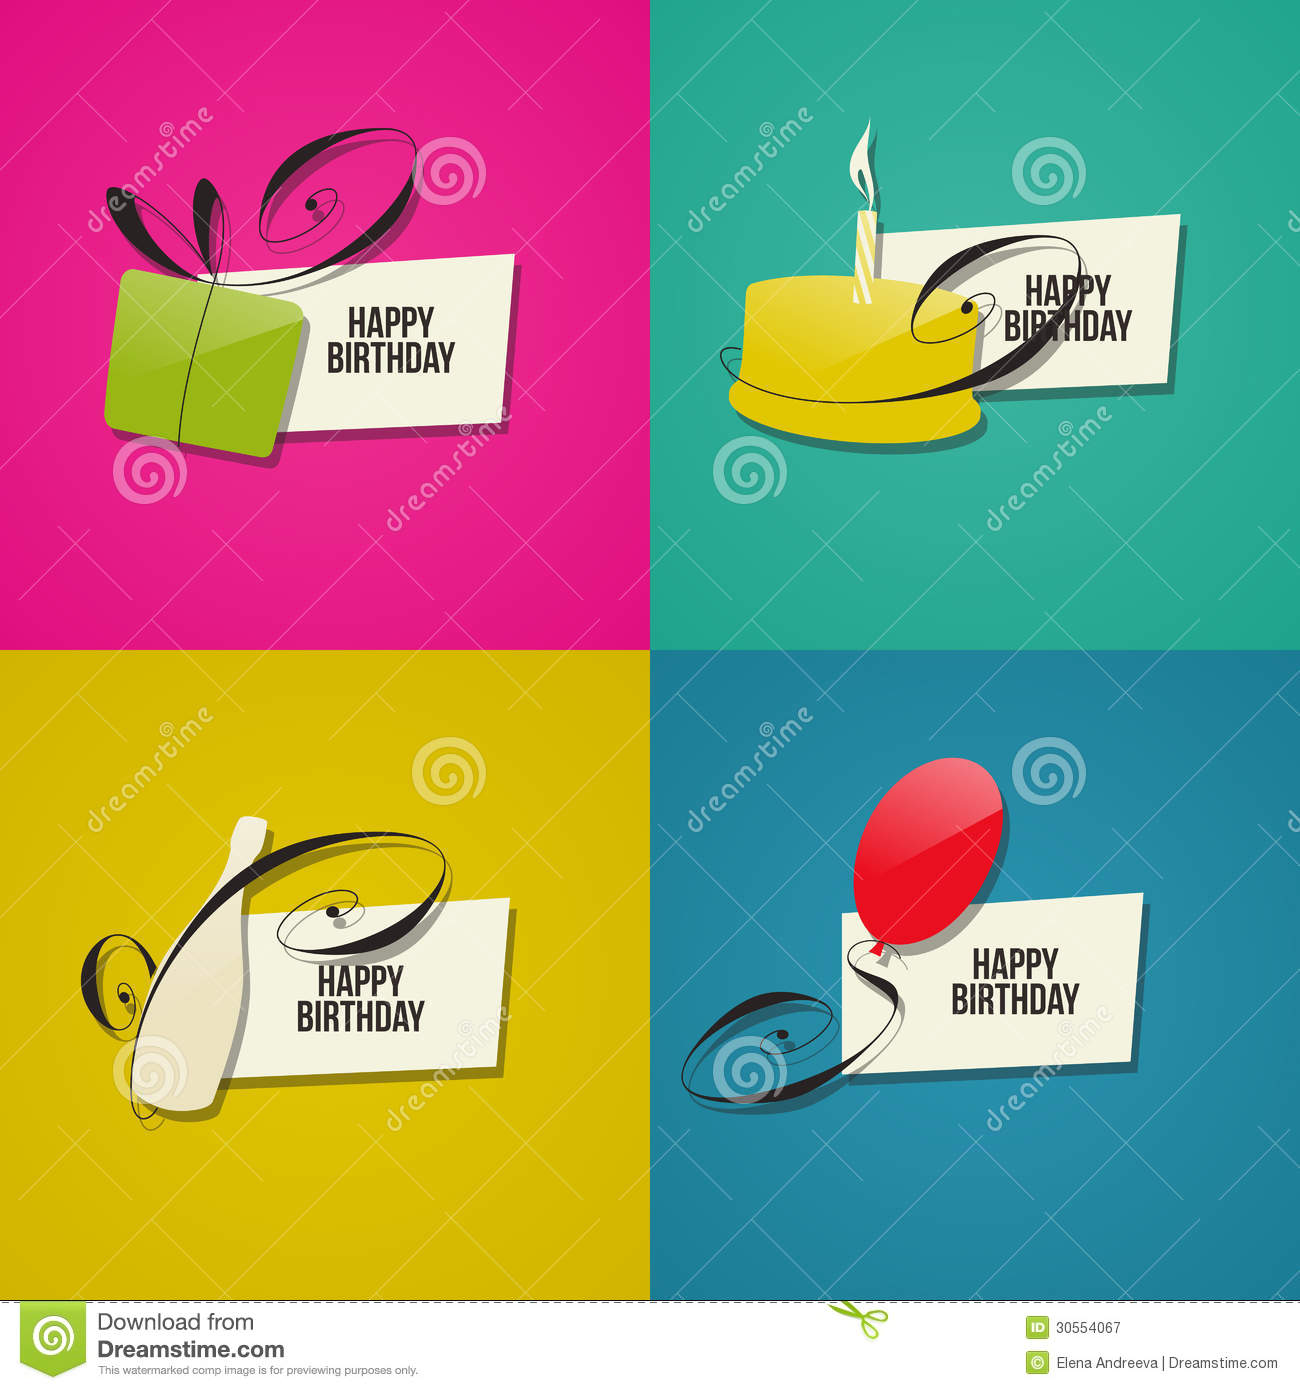 happy birthday greeting card design ; happy-birthday-greeting-cards-set-design-elements-30554067